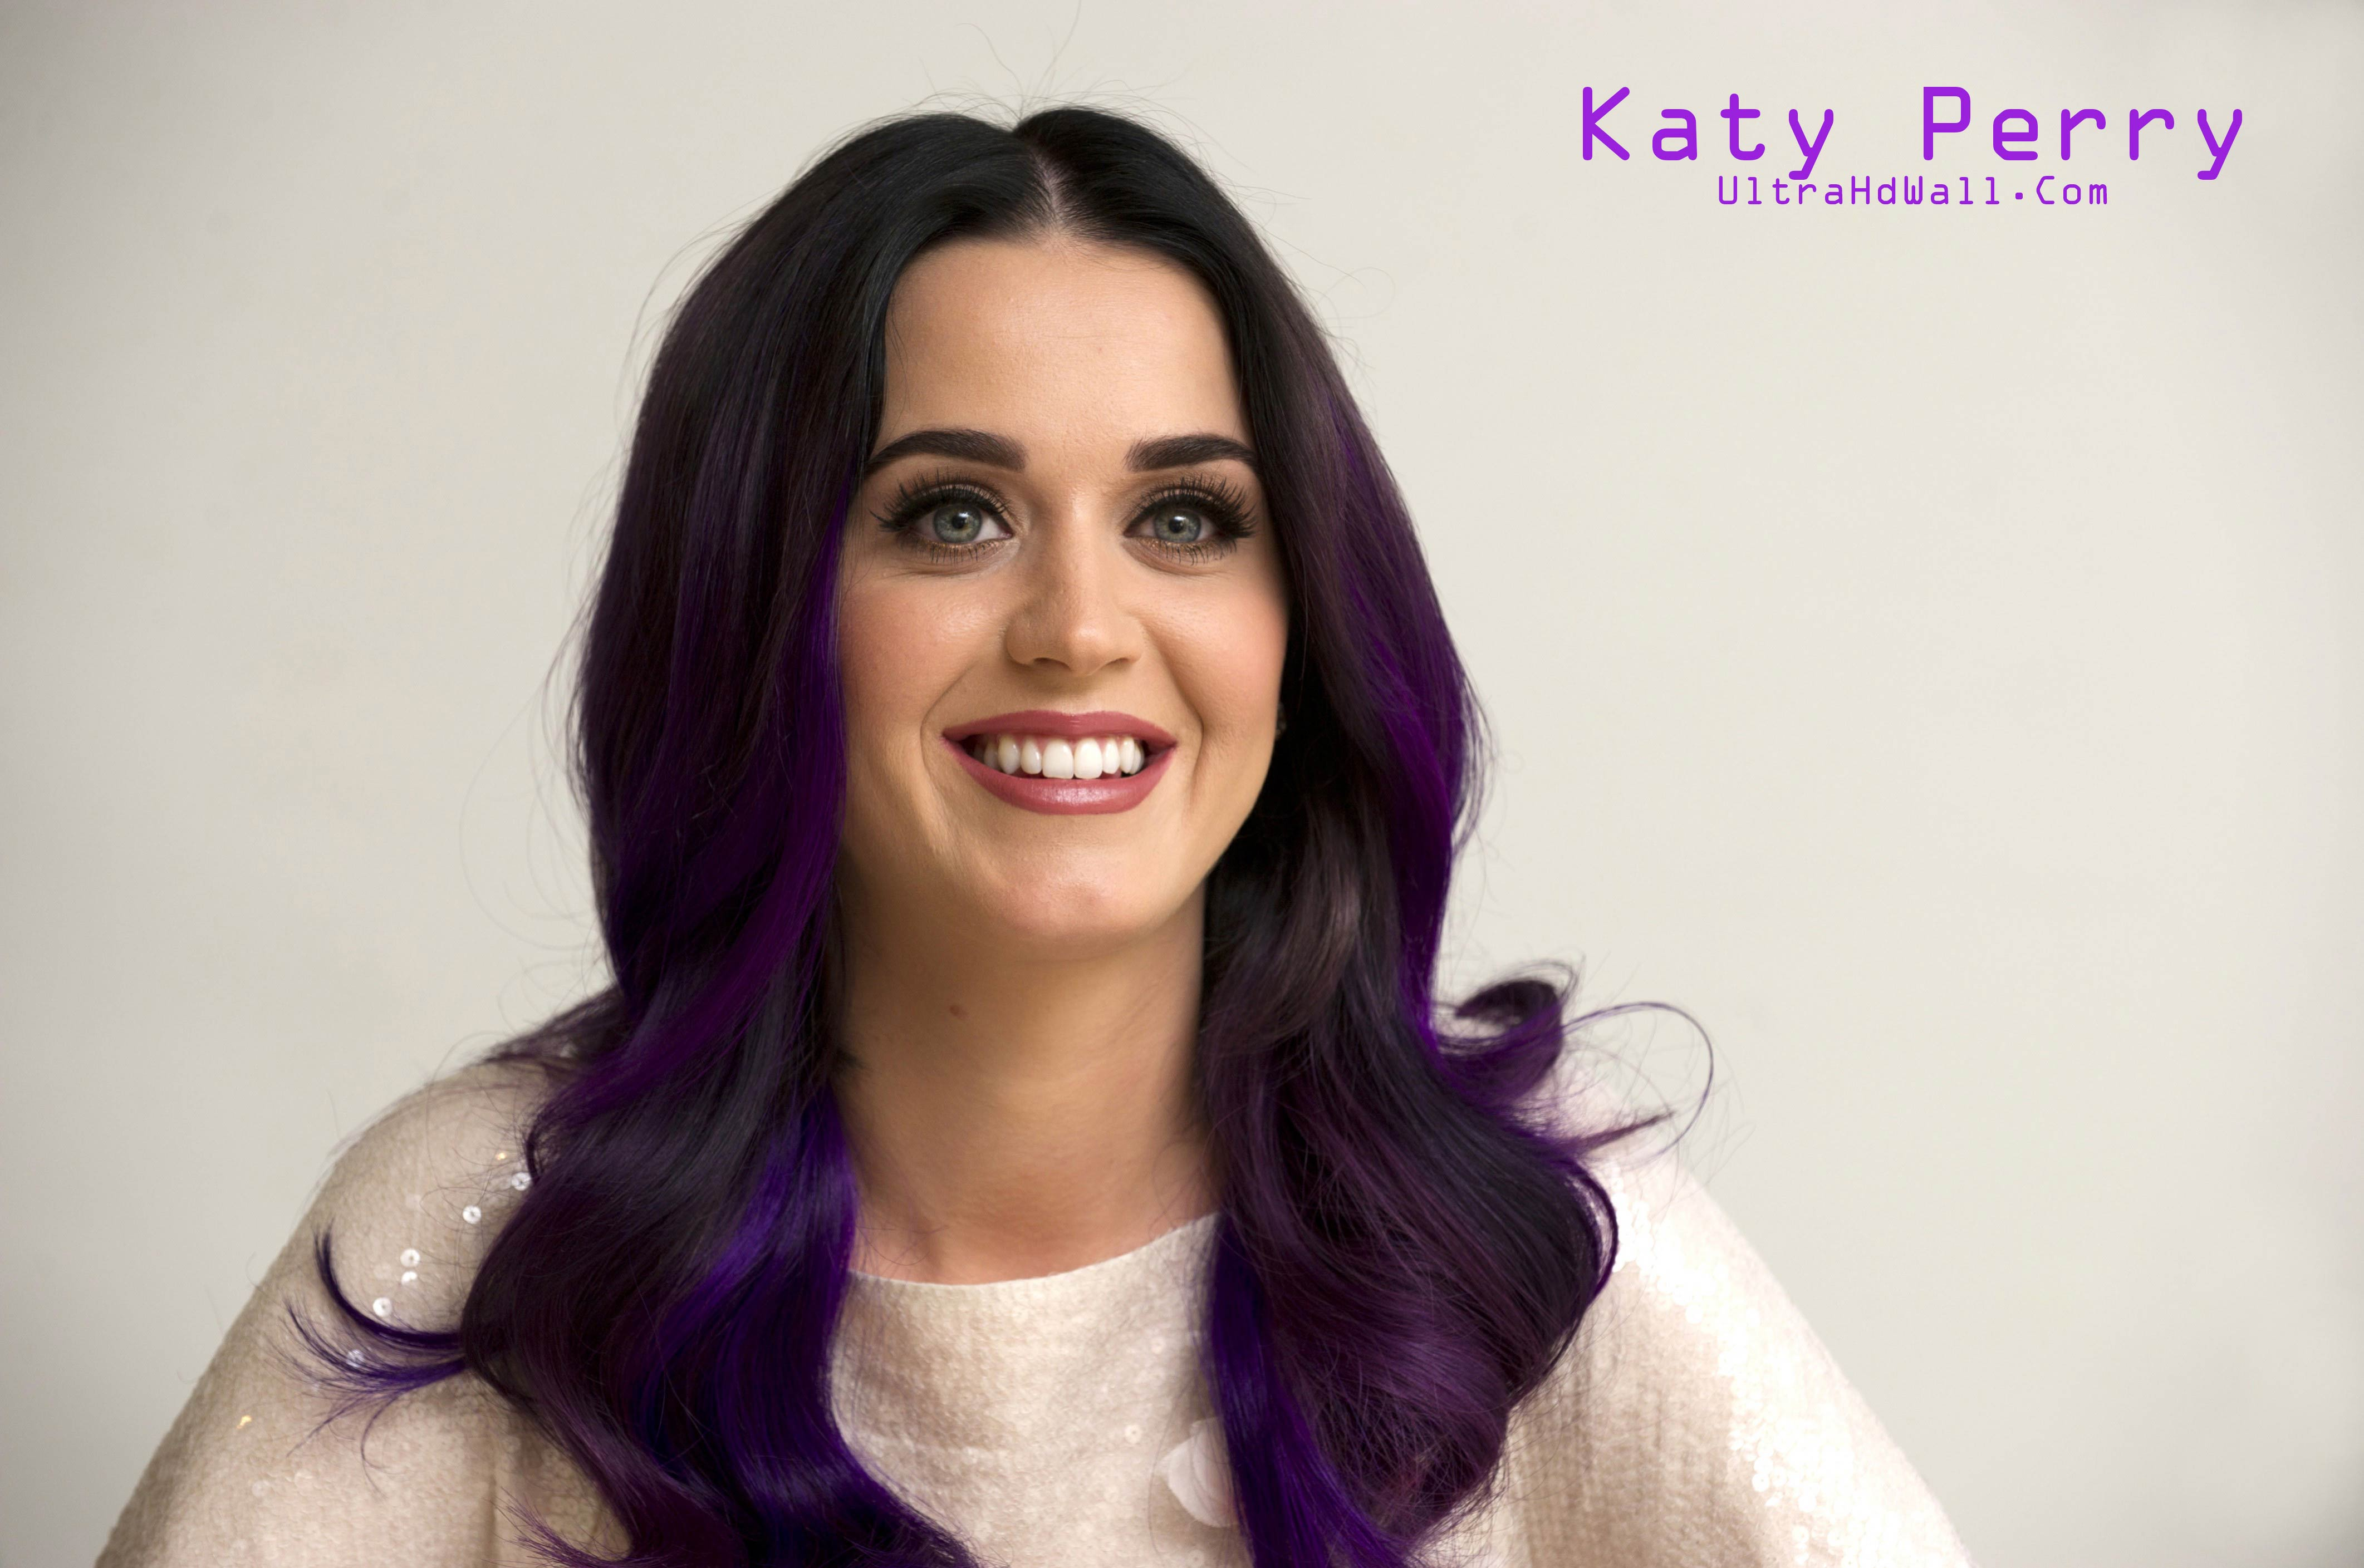 Katy Perry Wallpapers 2015 Wallpaper Cave